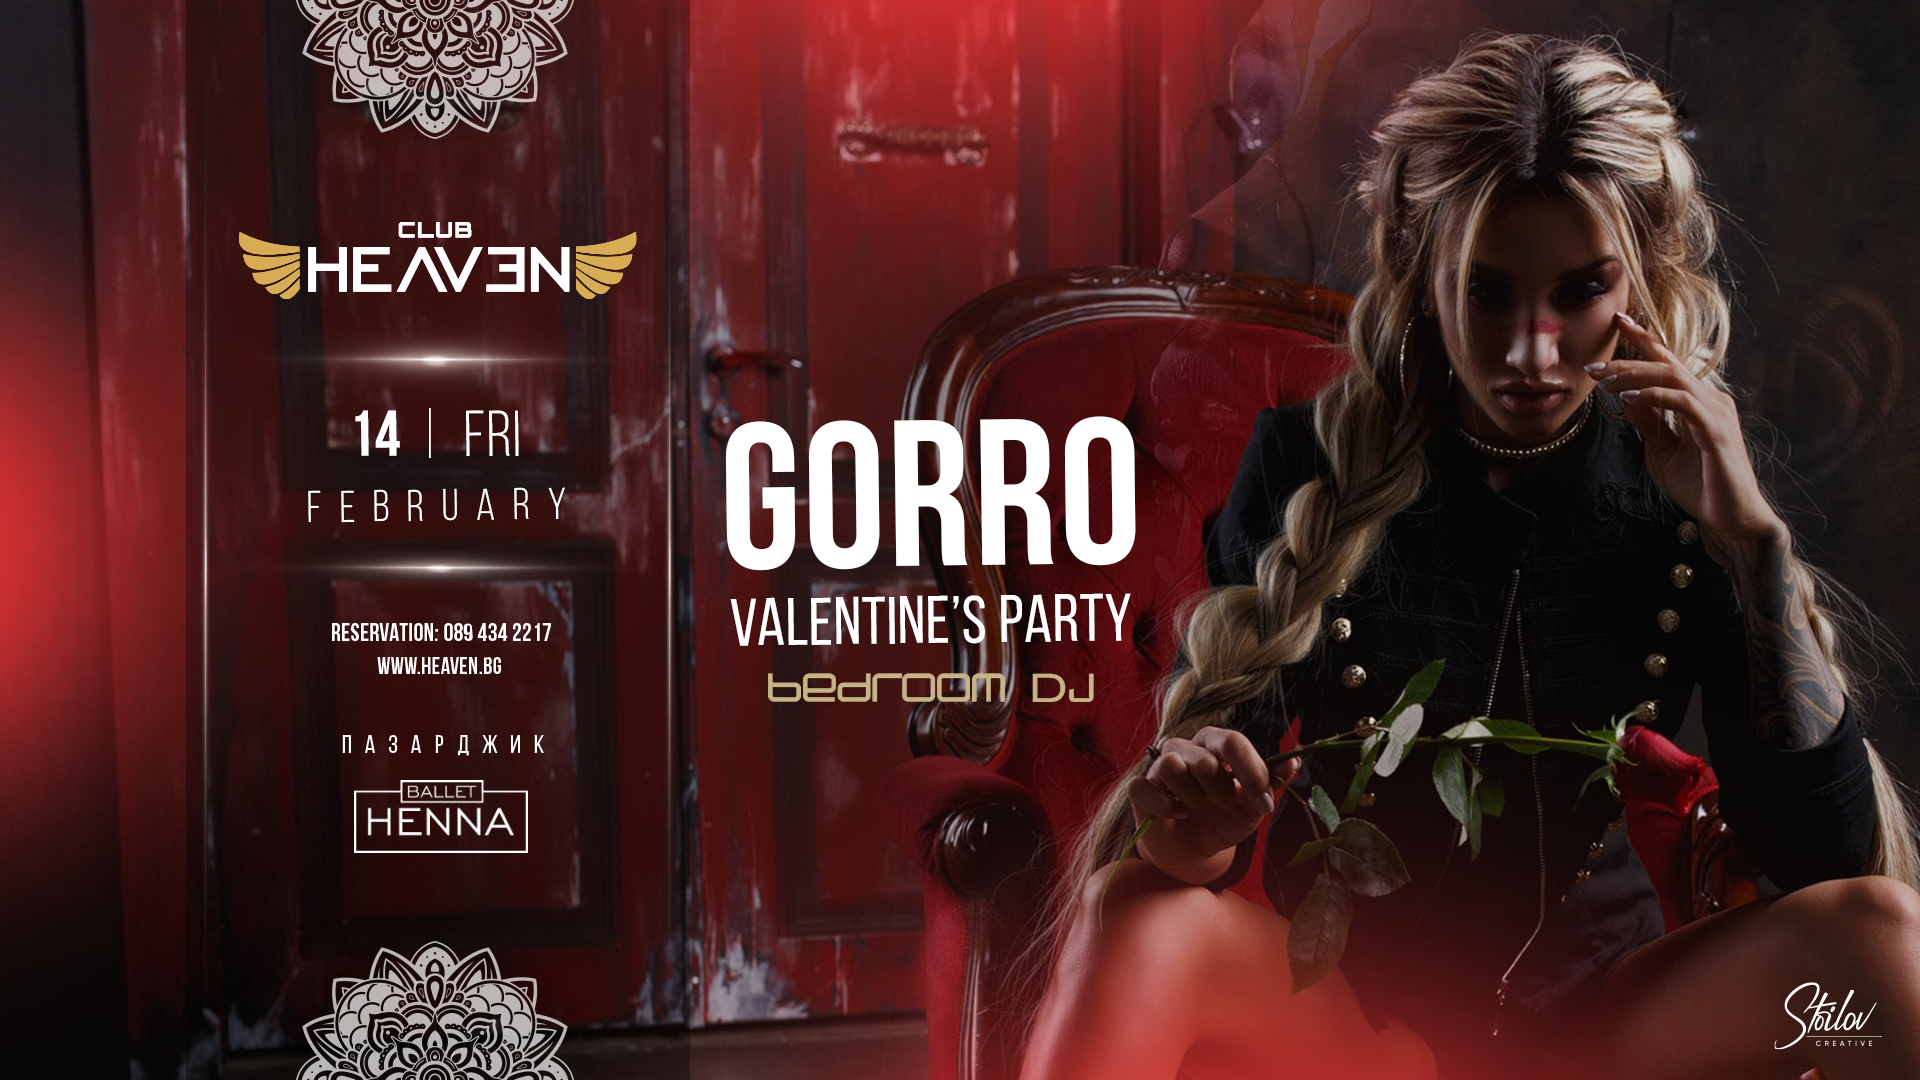 GORRO | VALENTINE'S PARTY